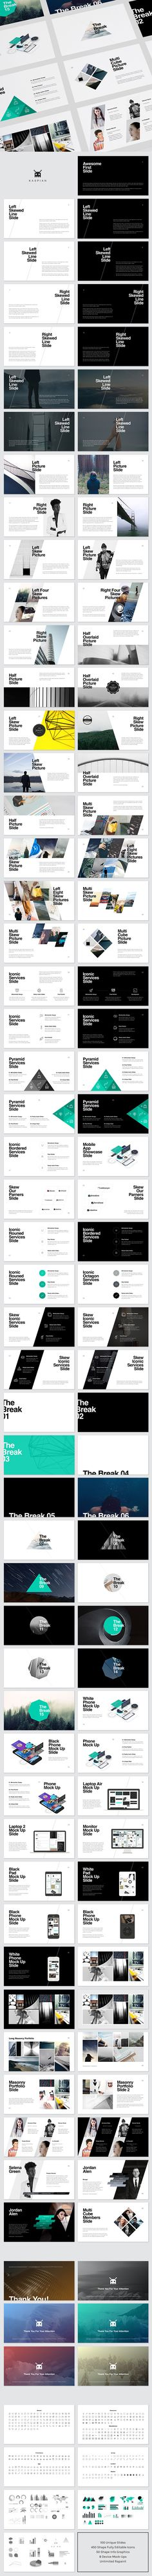 Both dark and - Keynote - Ideas of Keynote - Awesome modern geometric slide deck presentation layout templates. Both dark and light color schemes. Design Poster, Book Design, Layout Design, Set Design, Presentation Deck, Presentation Templates, Keynote Design, Brochure Design, Mise En Page Magazine